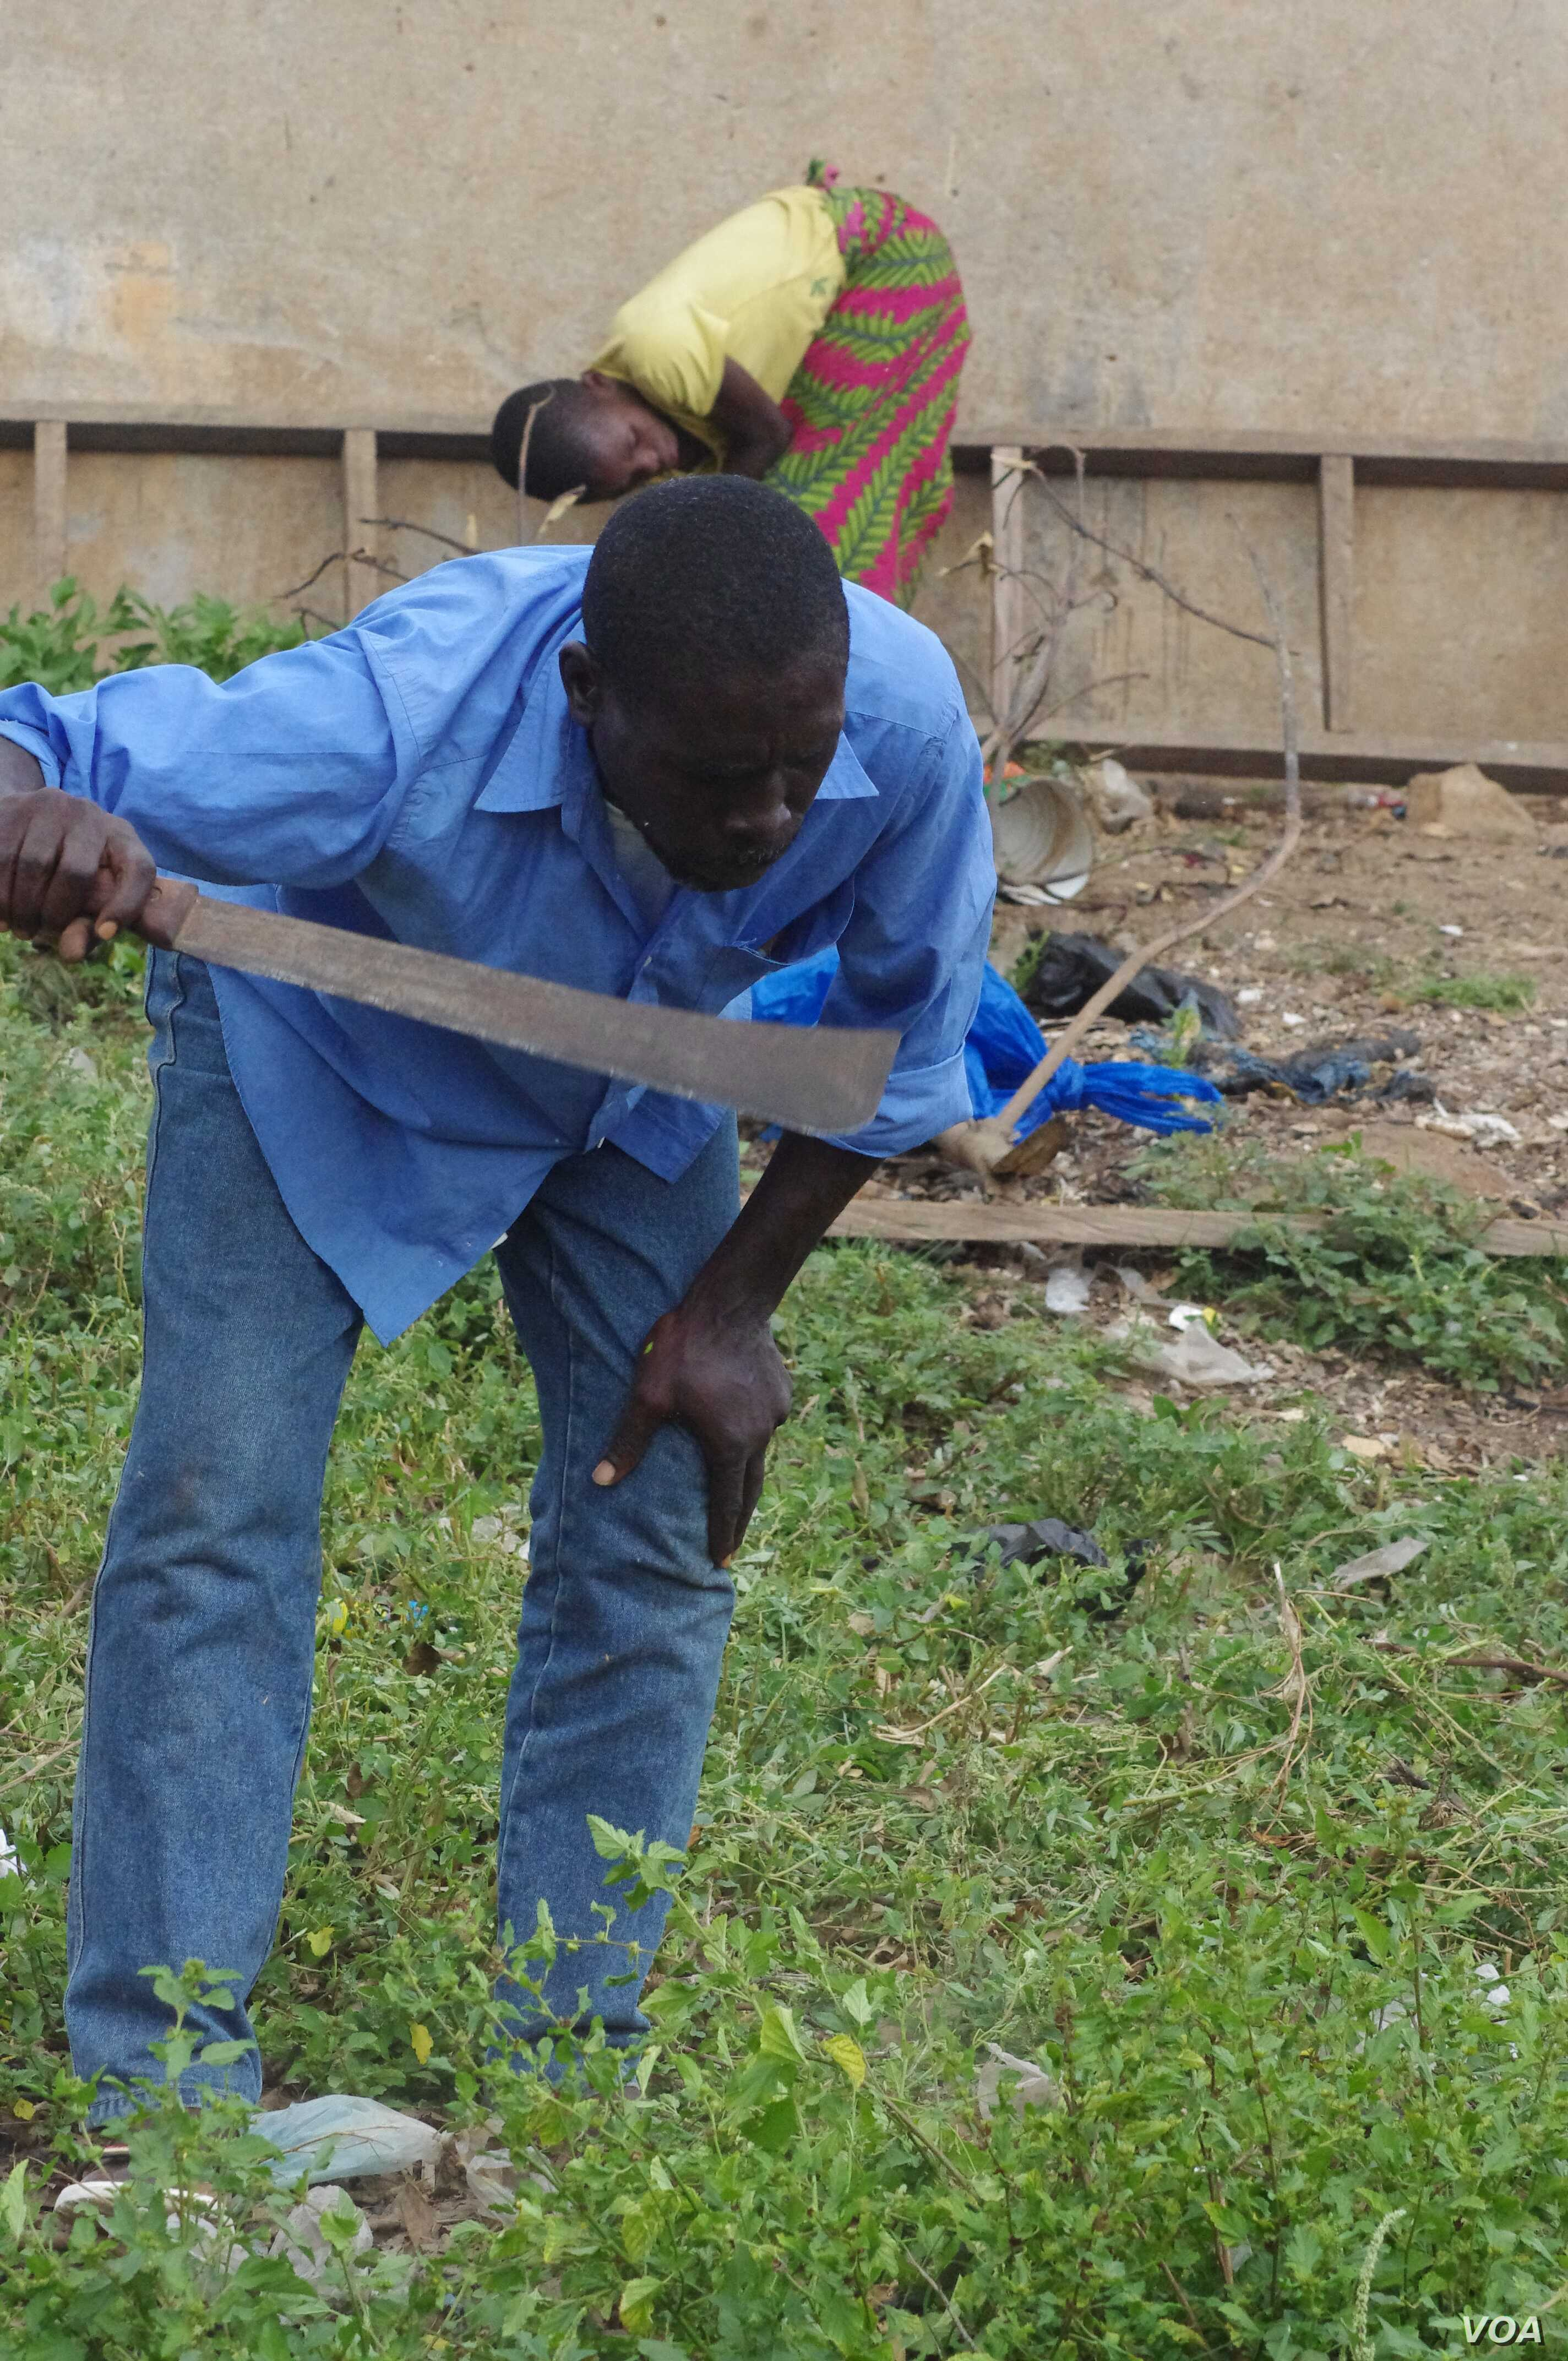 Dosso Abou clears brush to support himself, his wife and their five children, Bouake, Ivory Coast, May 4, 2013. (R. Corey-Boulet/VOA)